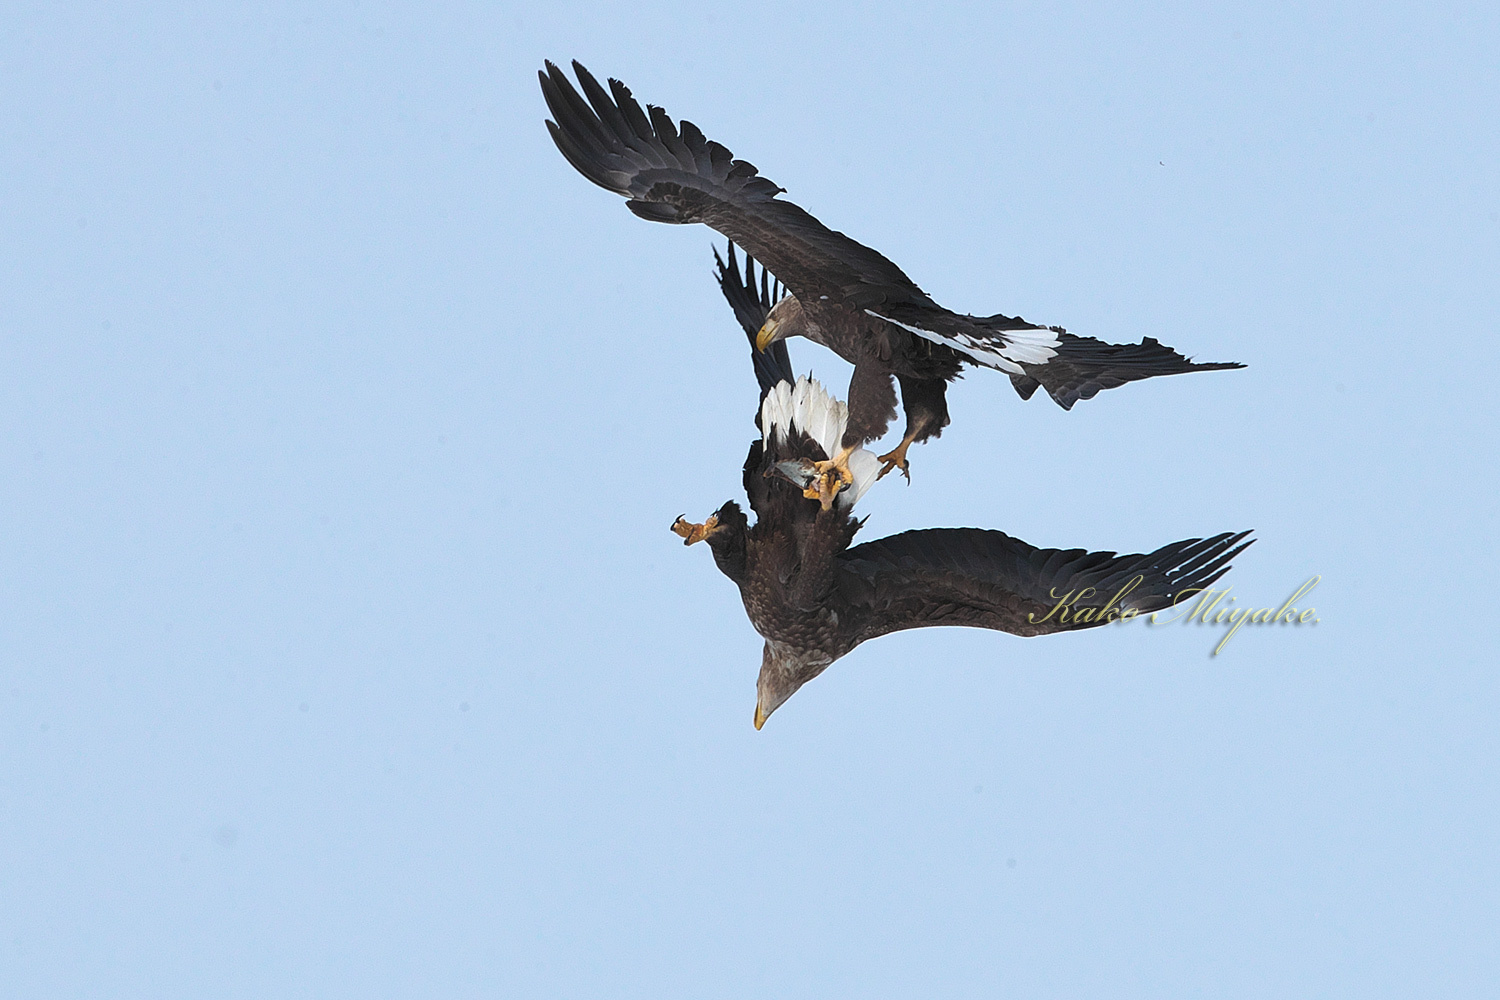 オオワシ(Steller\'s sea eagle )とオジロワシ(White-tailed eagle)_d0013455_11200003.jpg